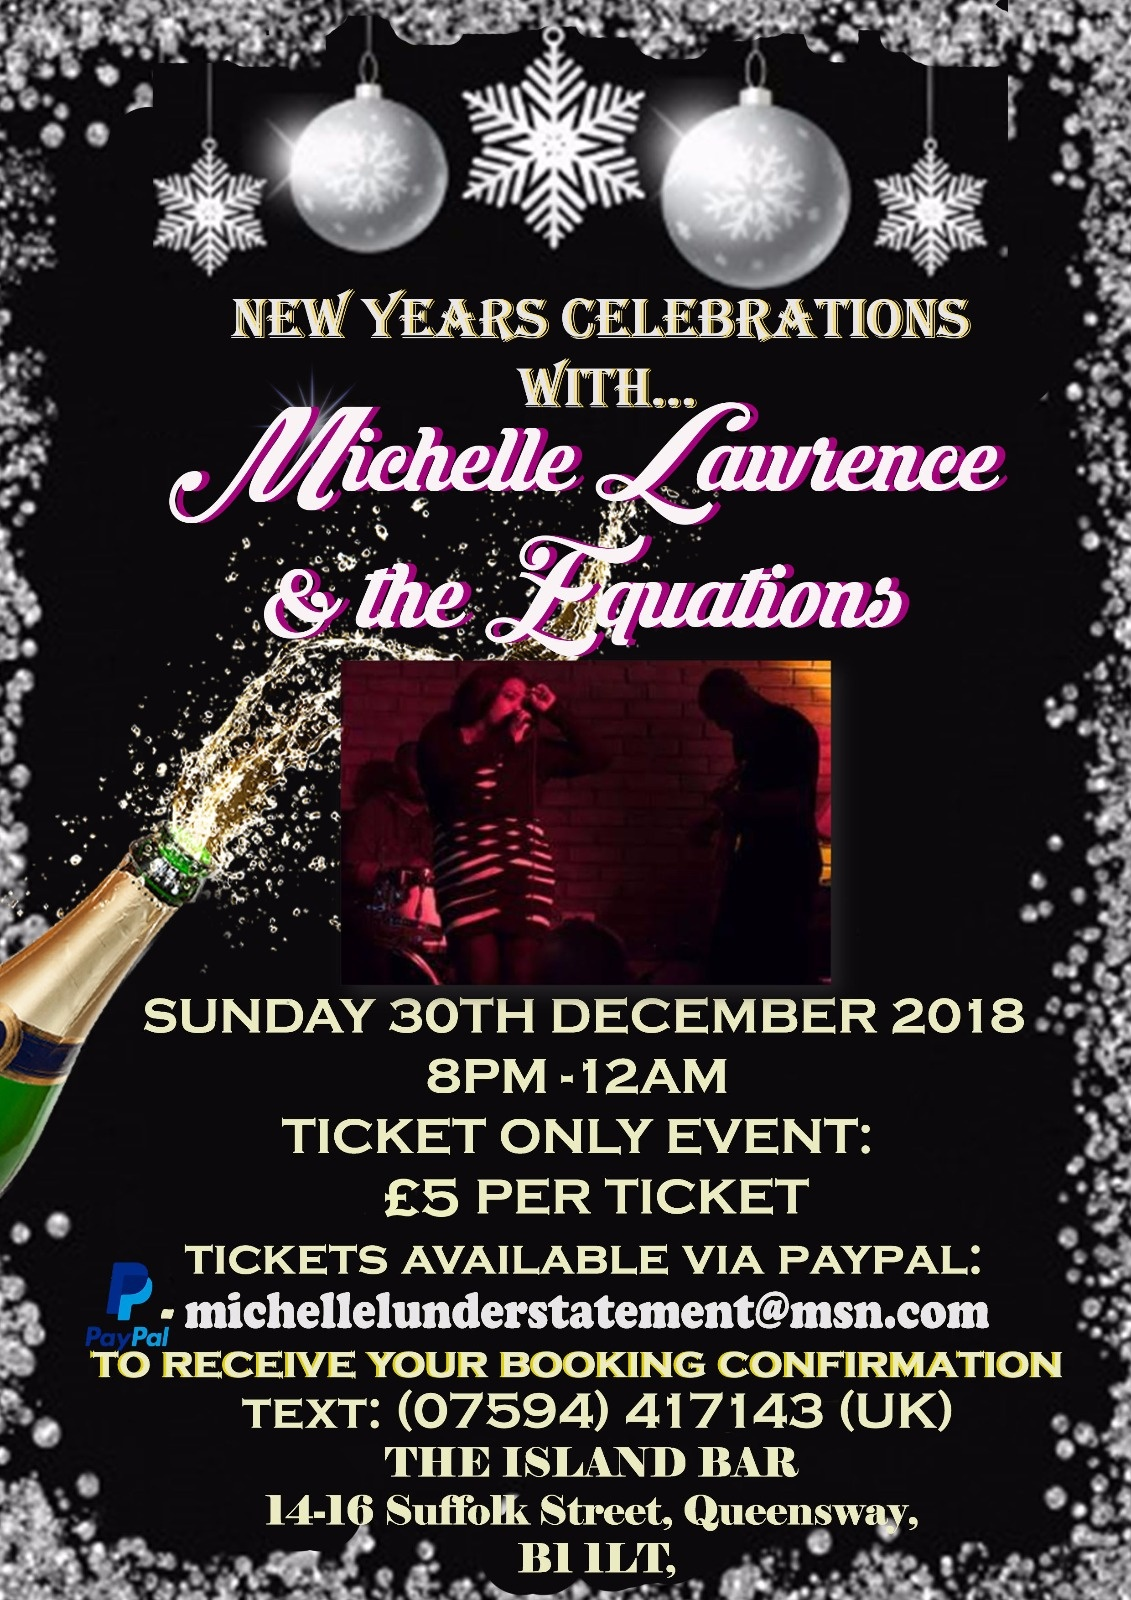 Michelle Lawrence & The Equations